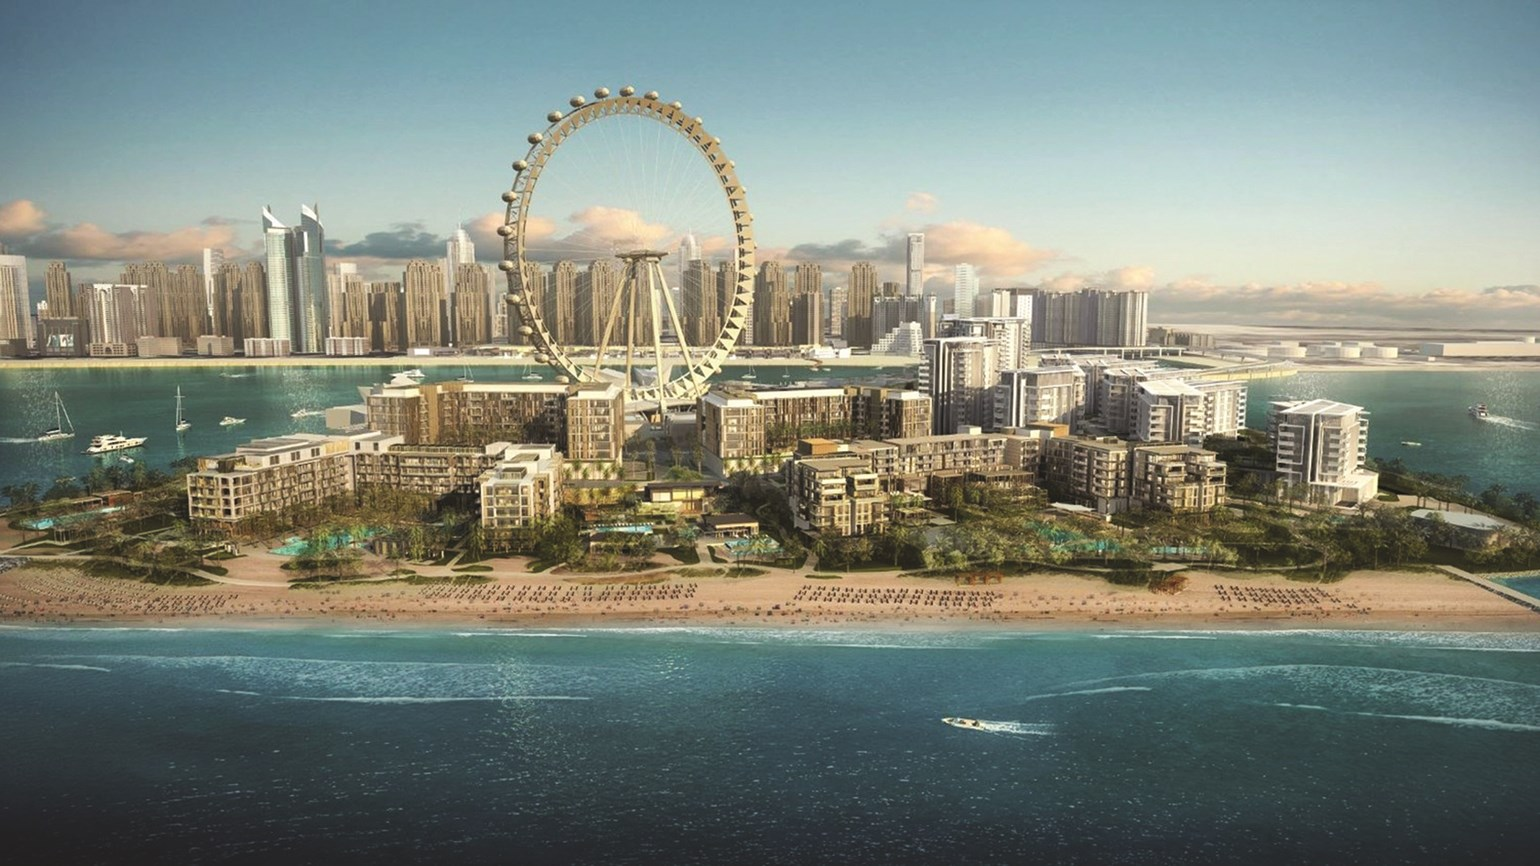 Caesars hotels due to open this year in Dubai